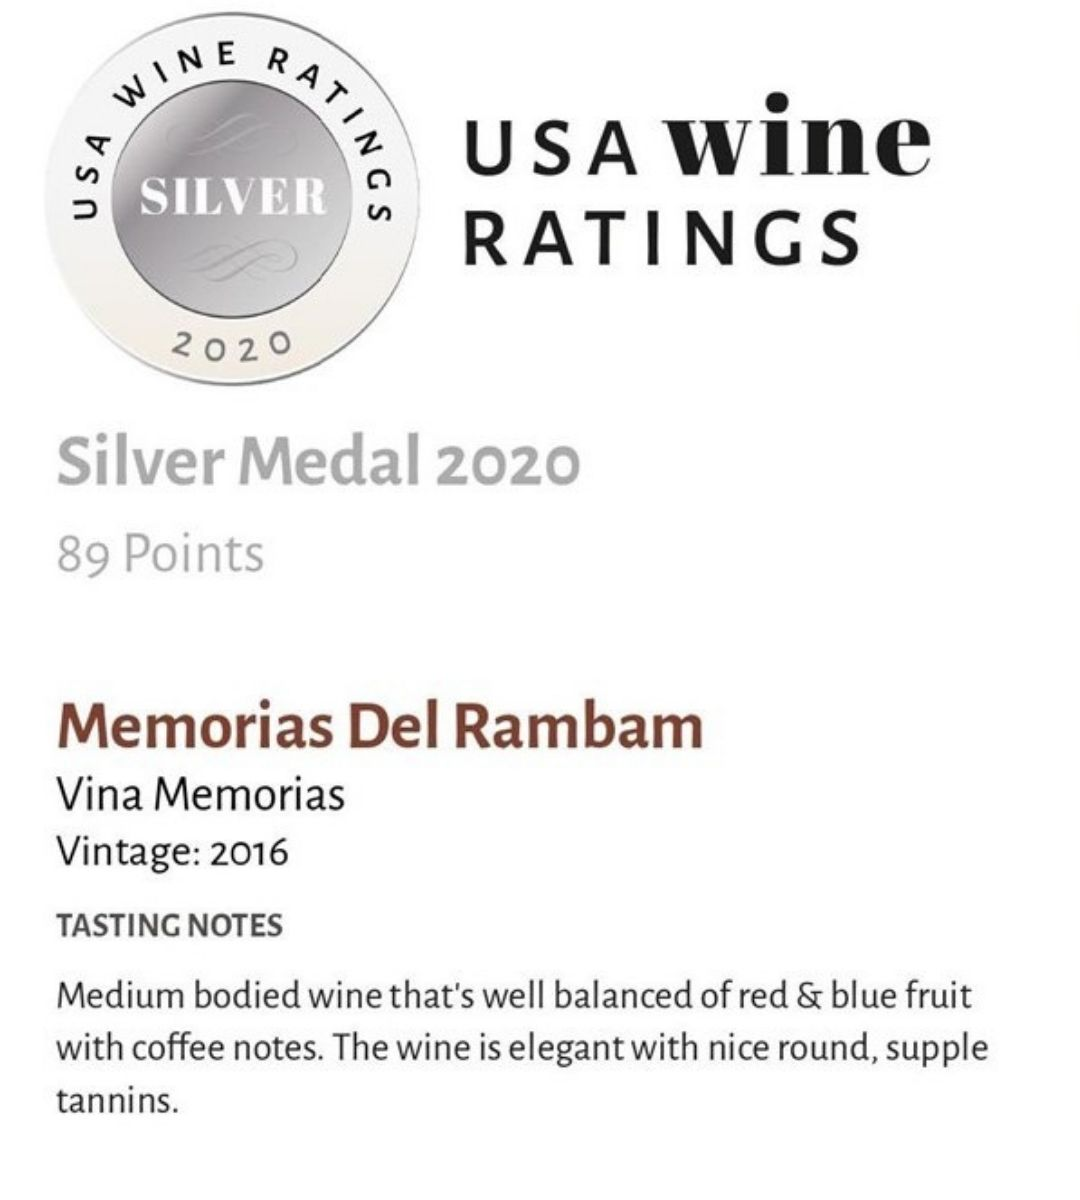 Memorias del Rambam Silver Medal USA Wine Ratings